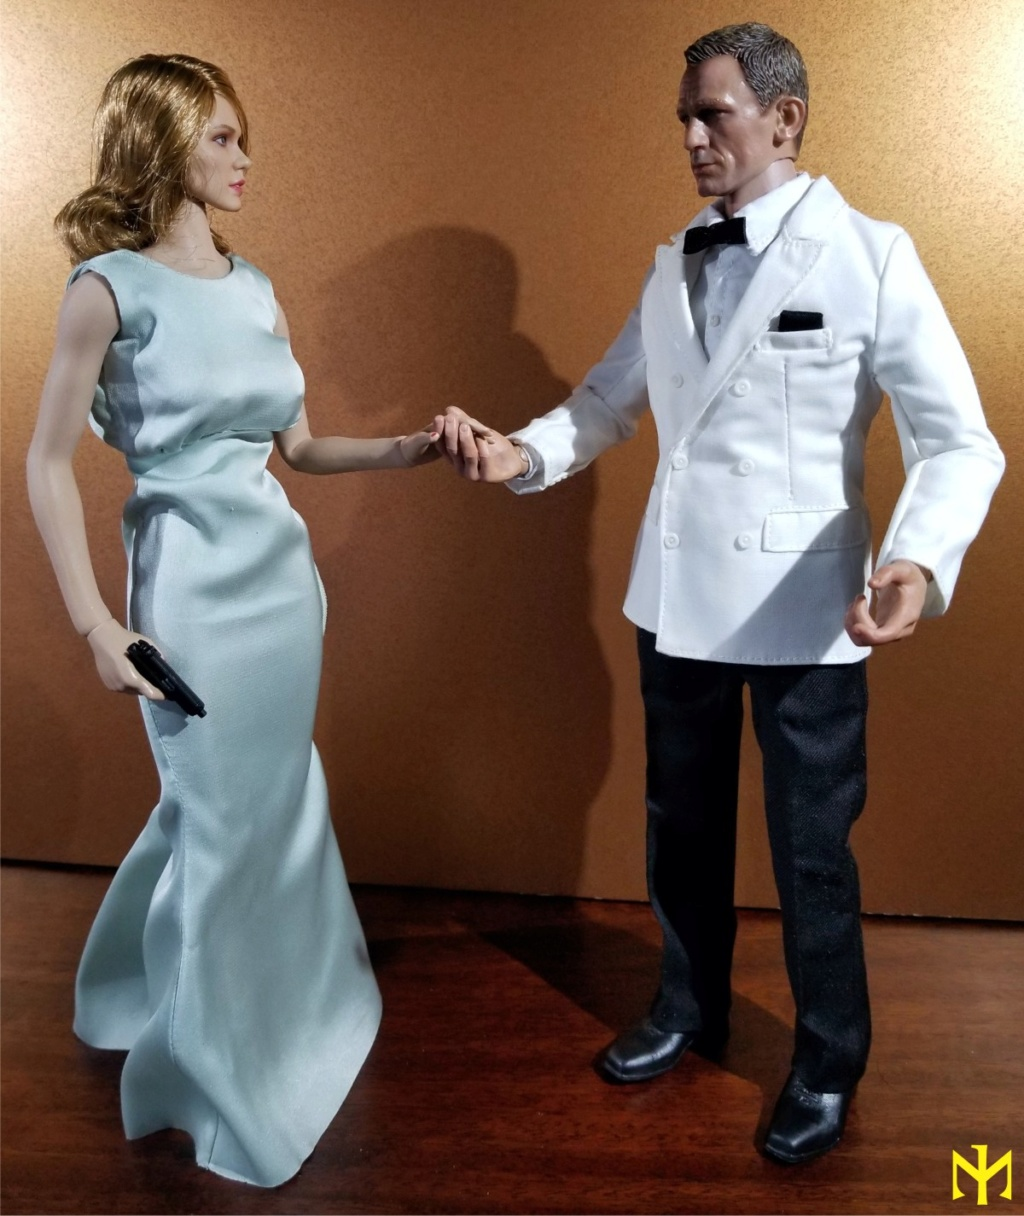 film - Black Box Toys BBT9006 Spectre Girl (Madeleine Swann/Lea Seydoux) Review Bbtsg017